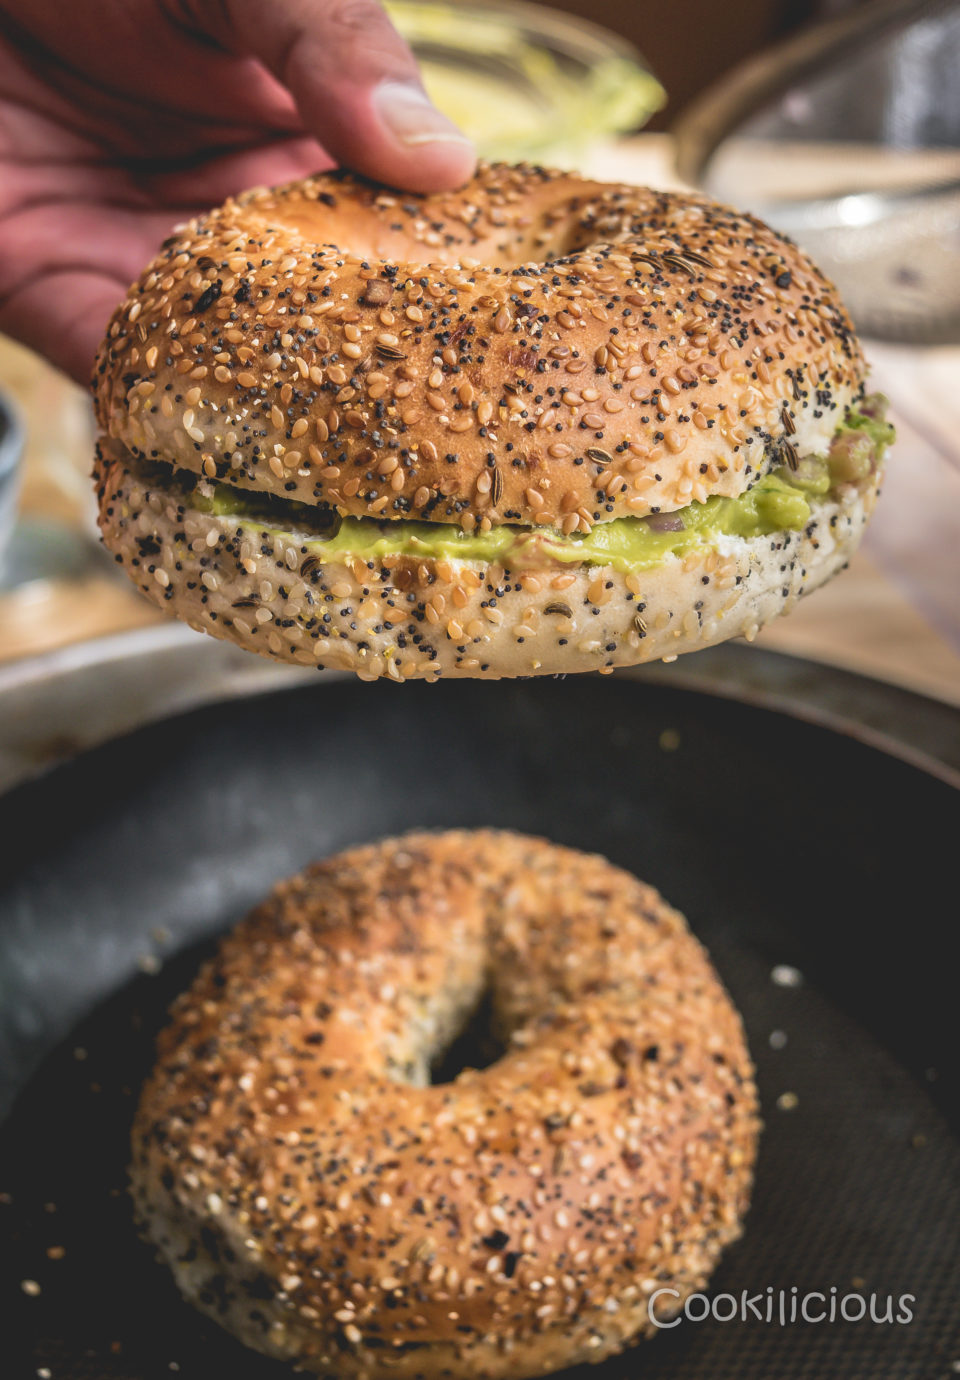 a hand lifting oneBreakfast Bagel Sandwich With Guacamole while the other rests below